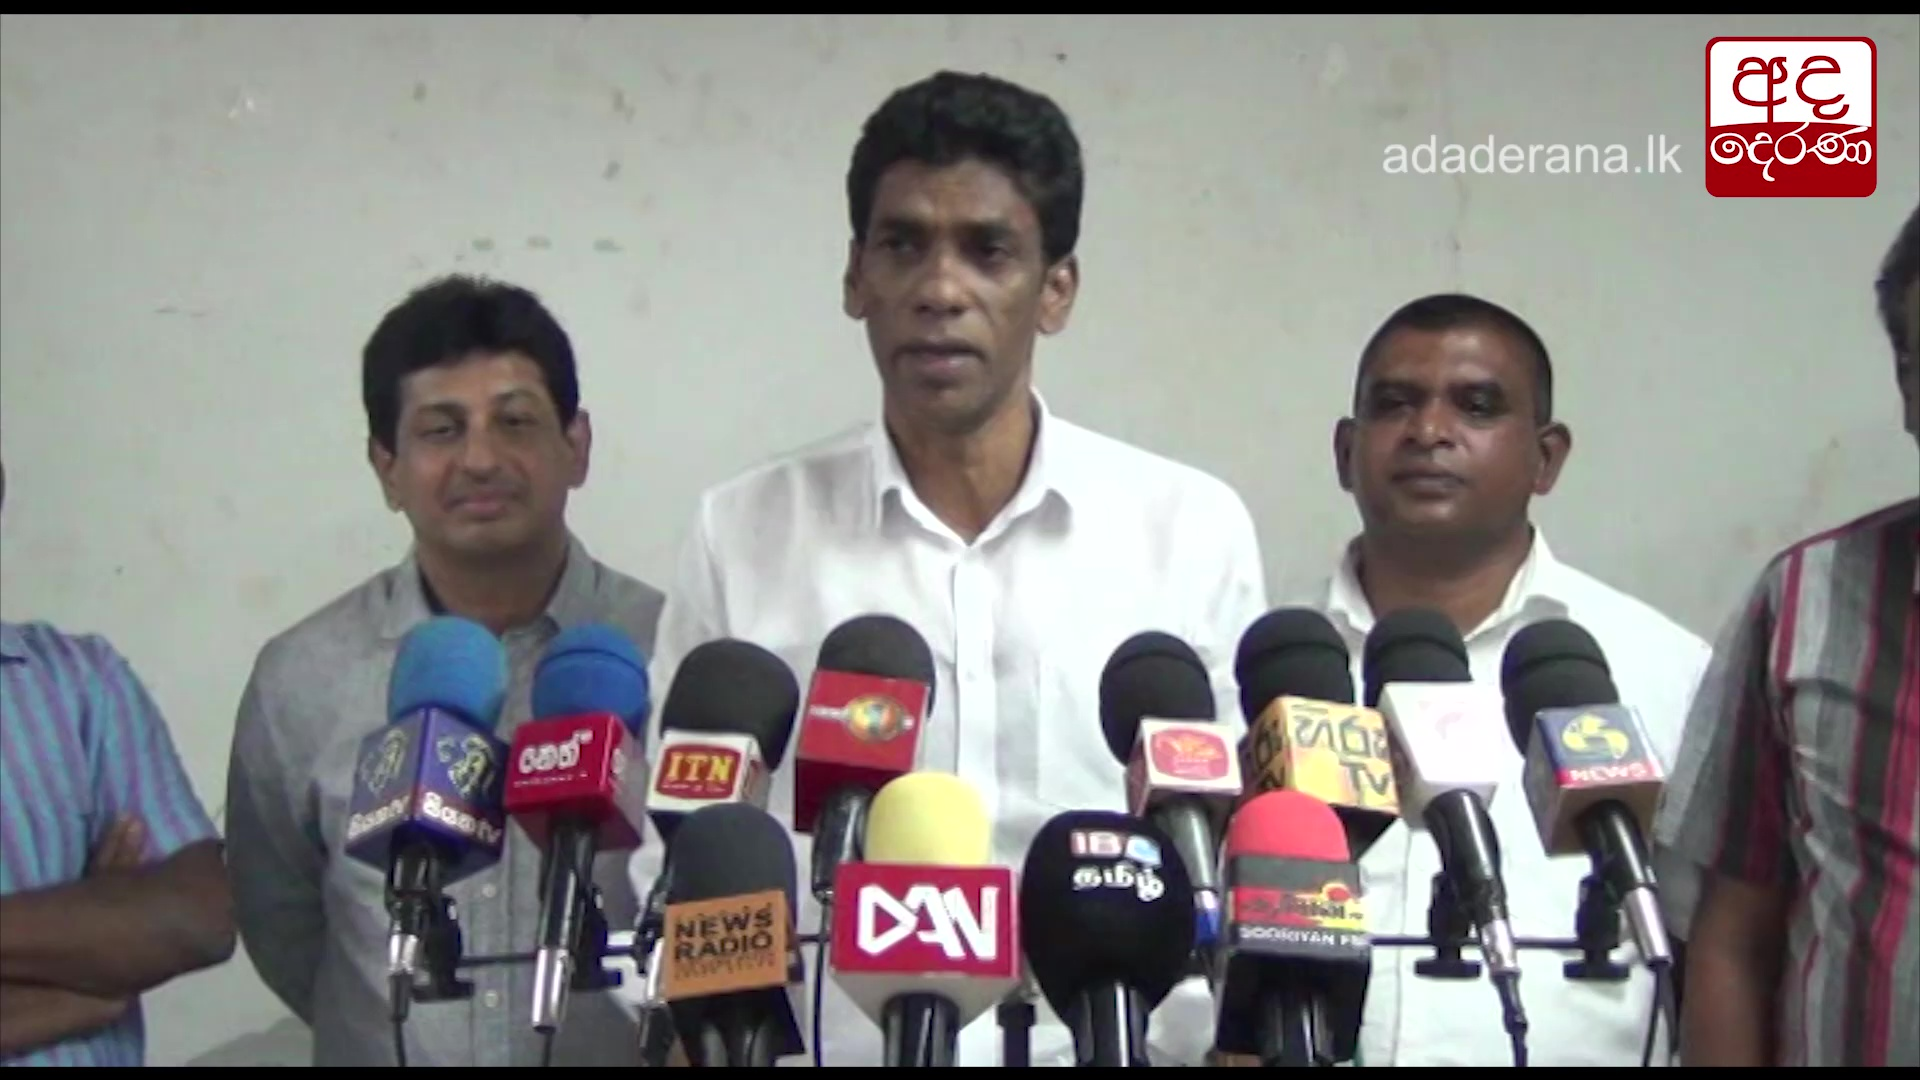 Our people decided to support Sajith - Digambaran